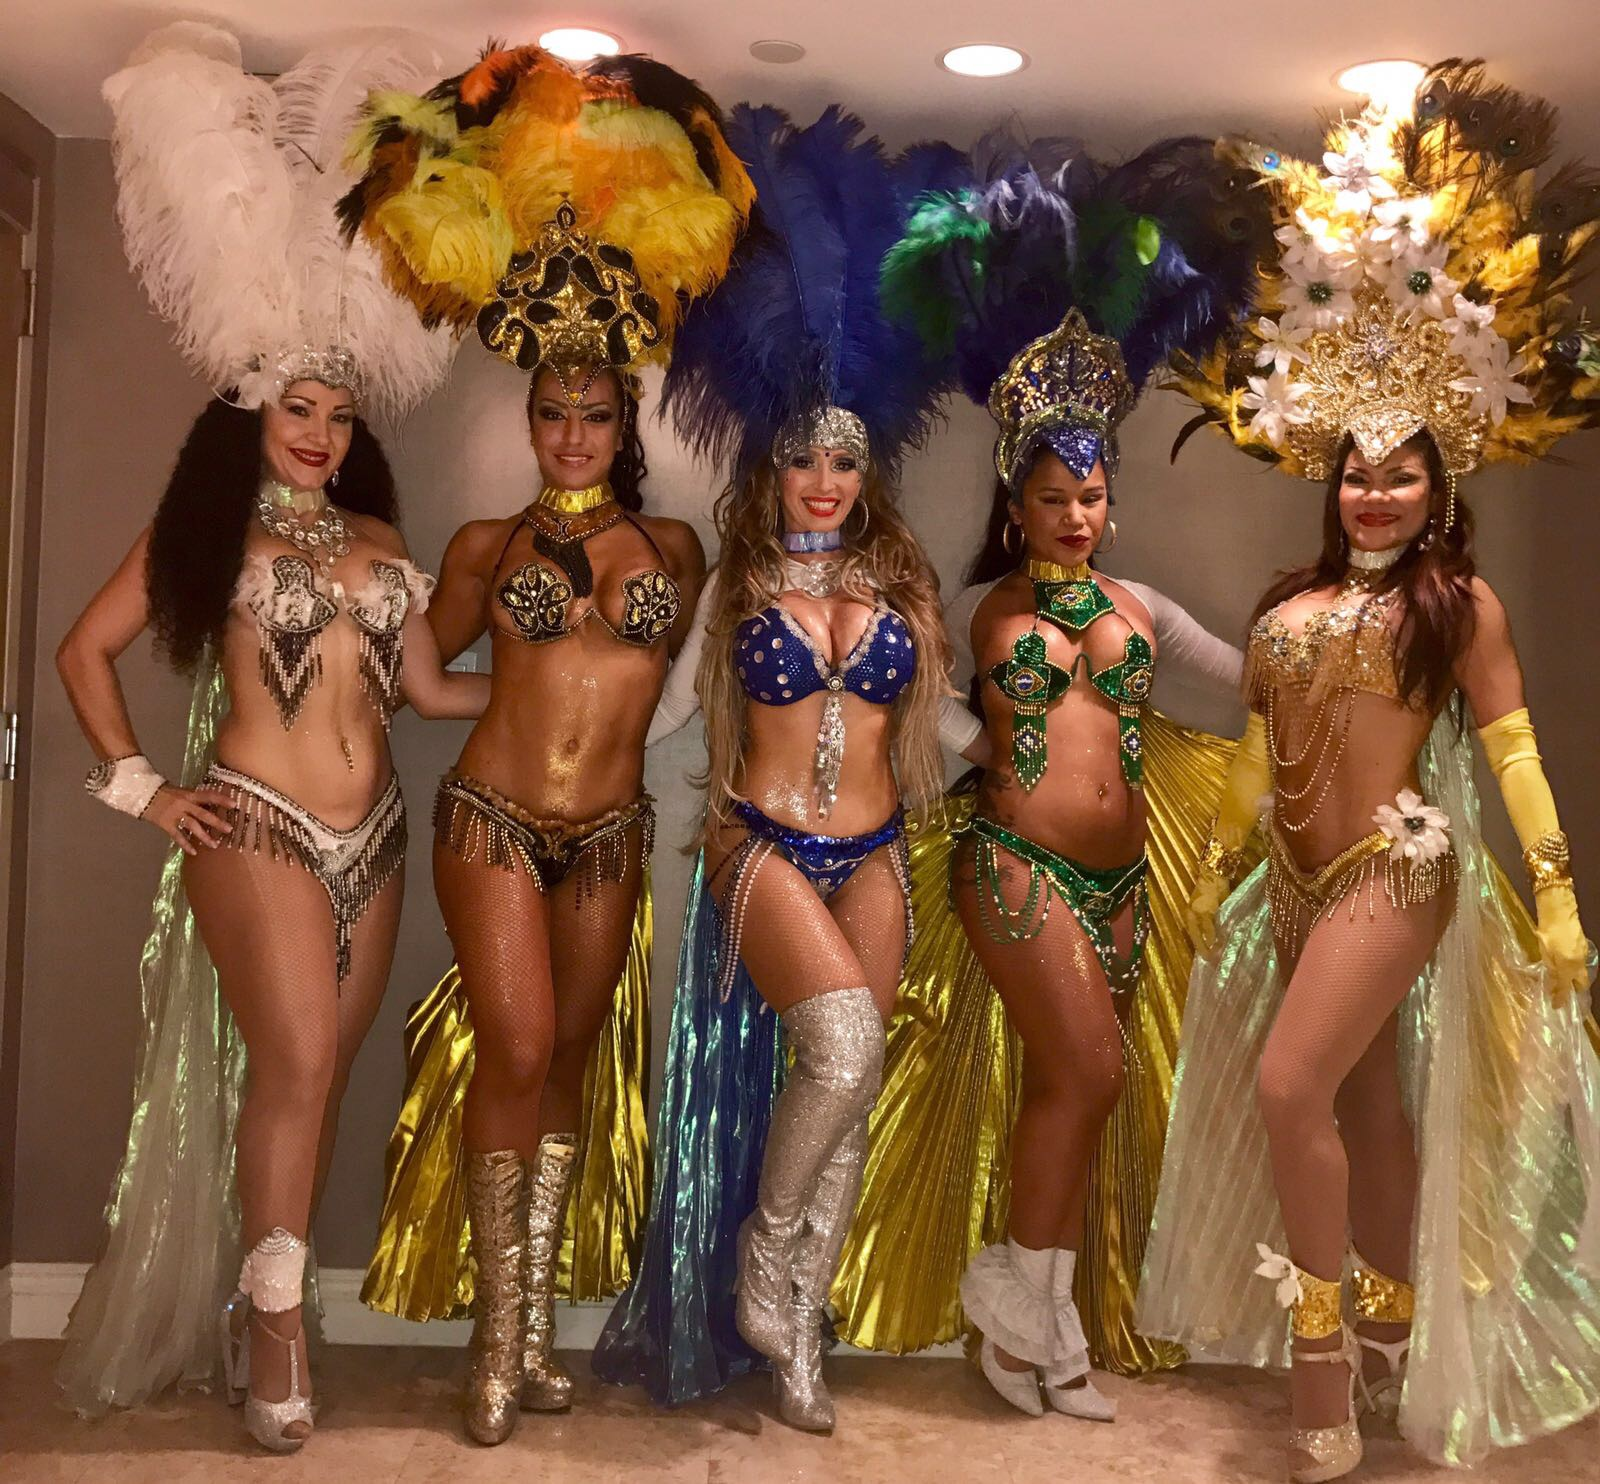 Brazilian girls miami